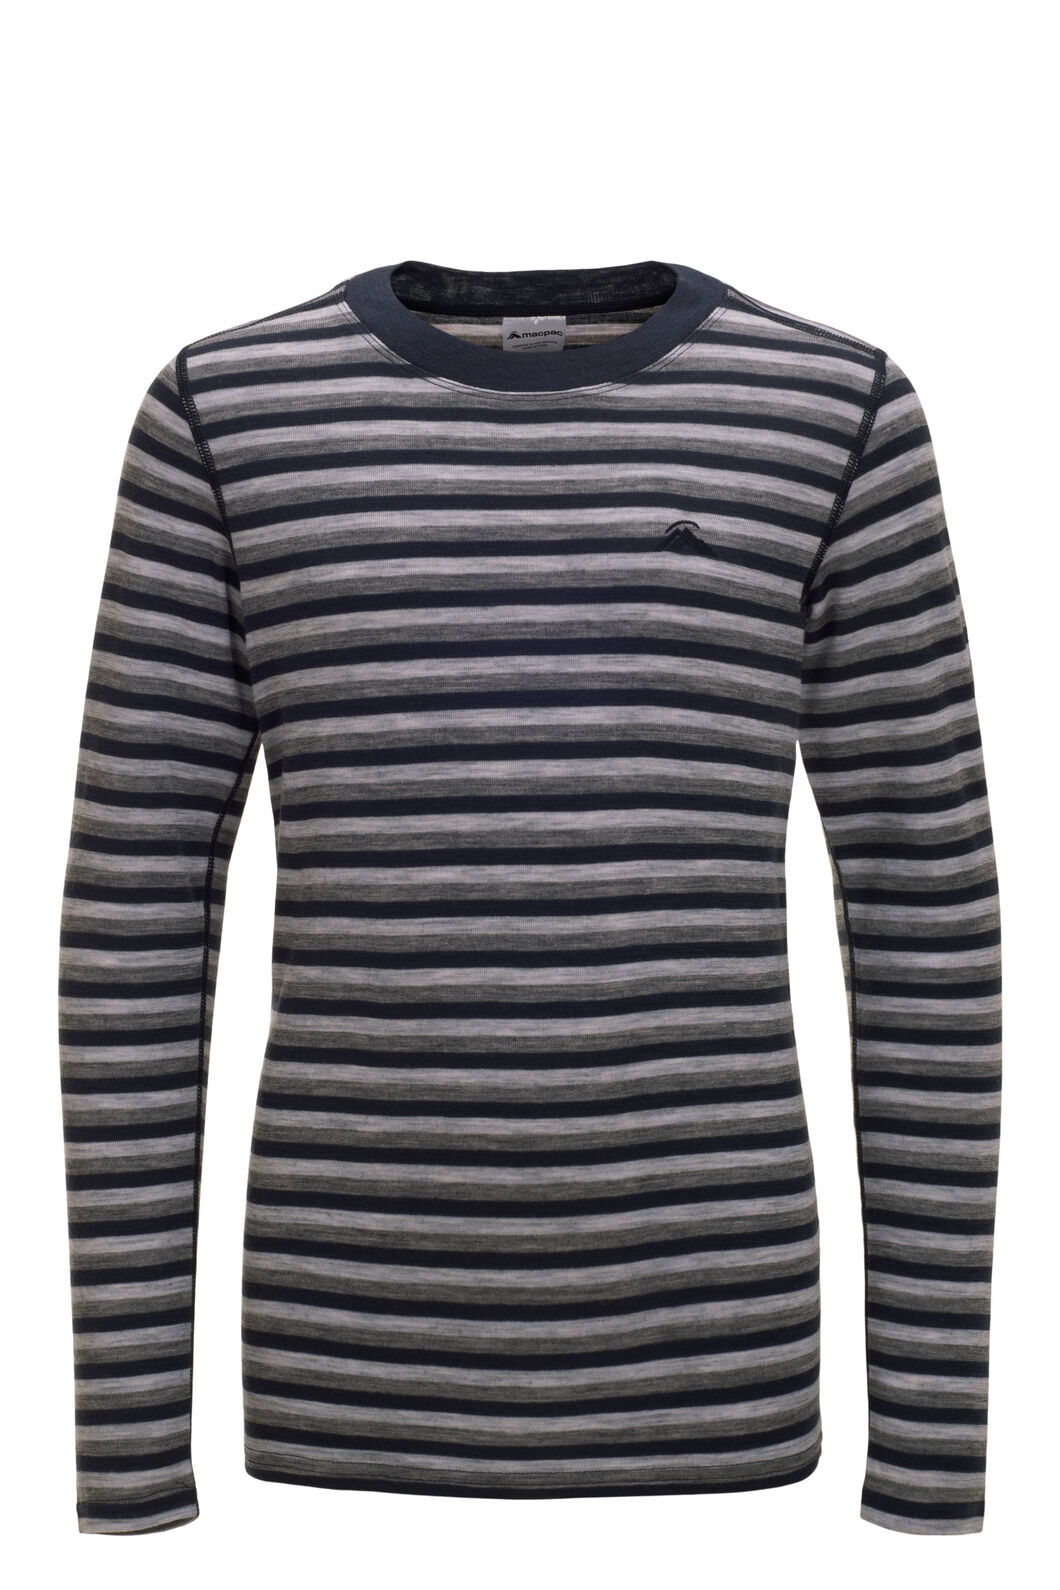 Macpac 220 Merino Long Sleeve Top — Kids', Grey/Navy Stripe, hi-res